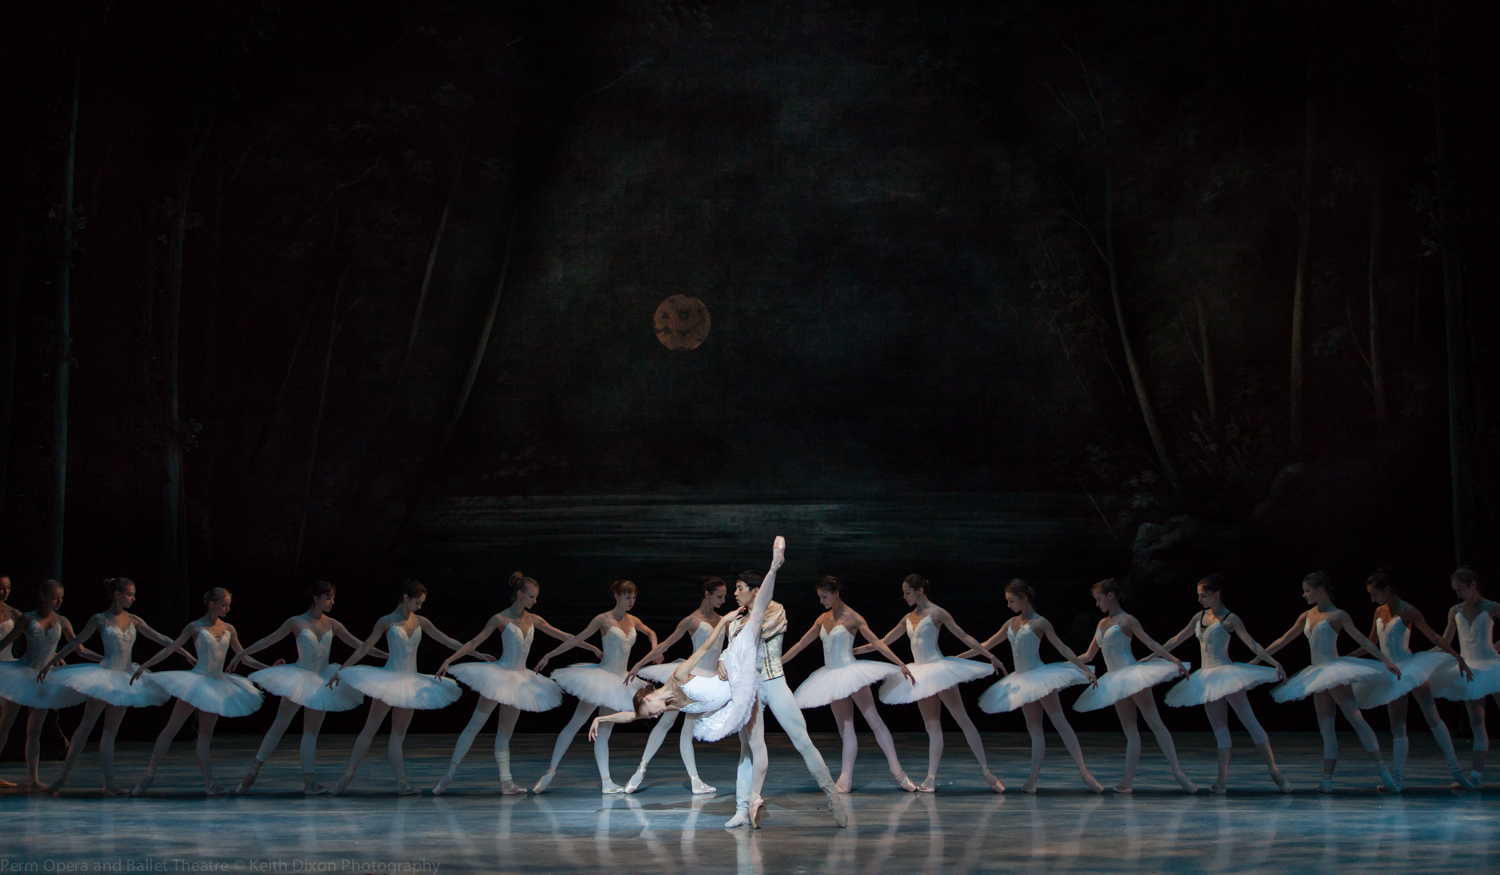 Swan Lake Rehearsals Perm Opera and Ballet Theatre.44.jpg